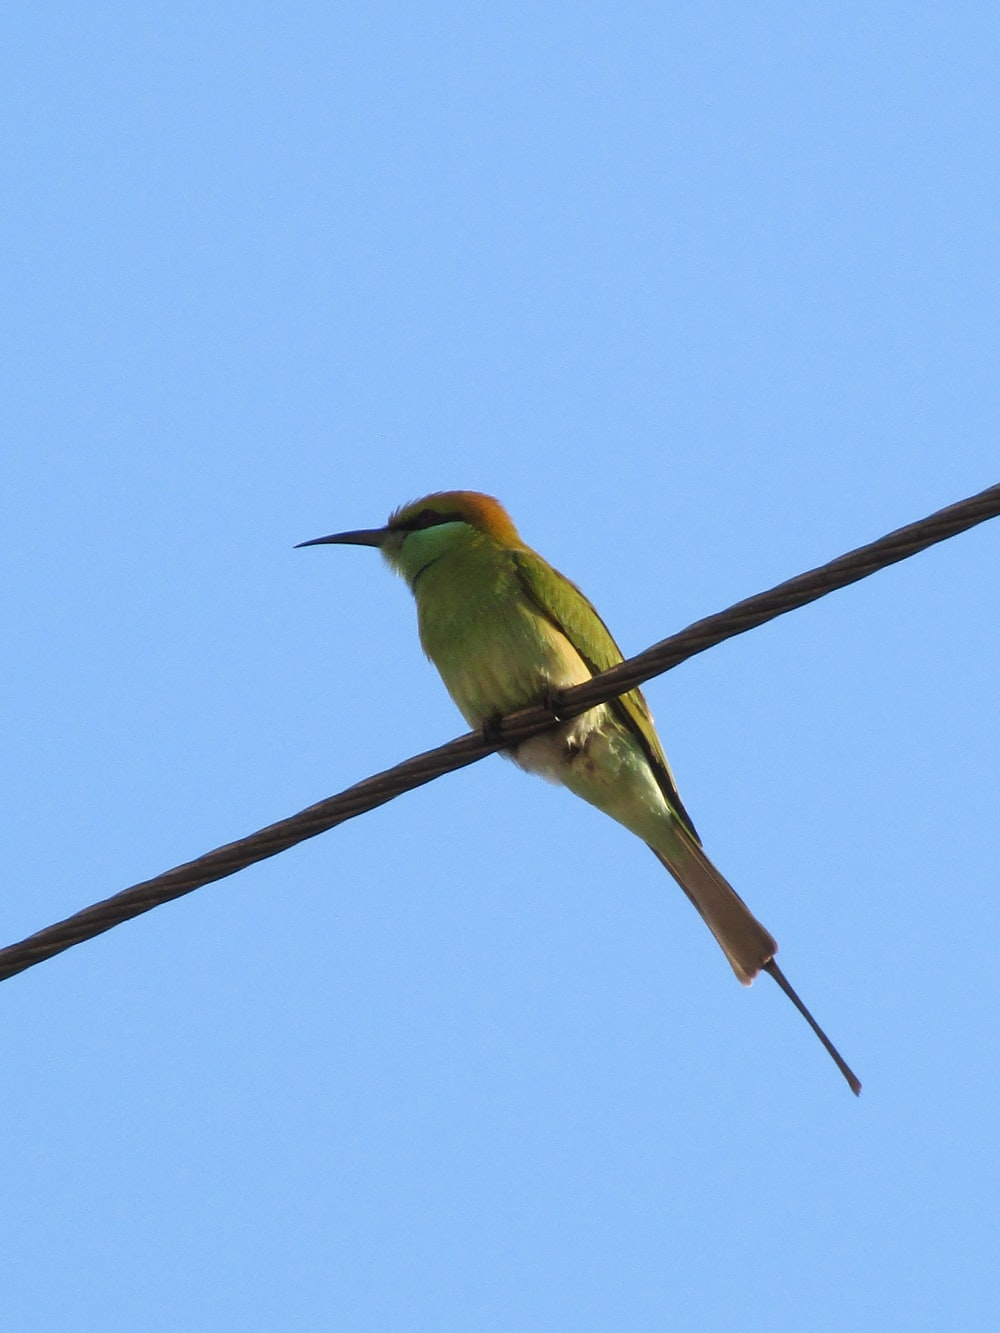 green and brown bird on brown wire during daytime